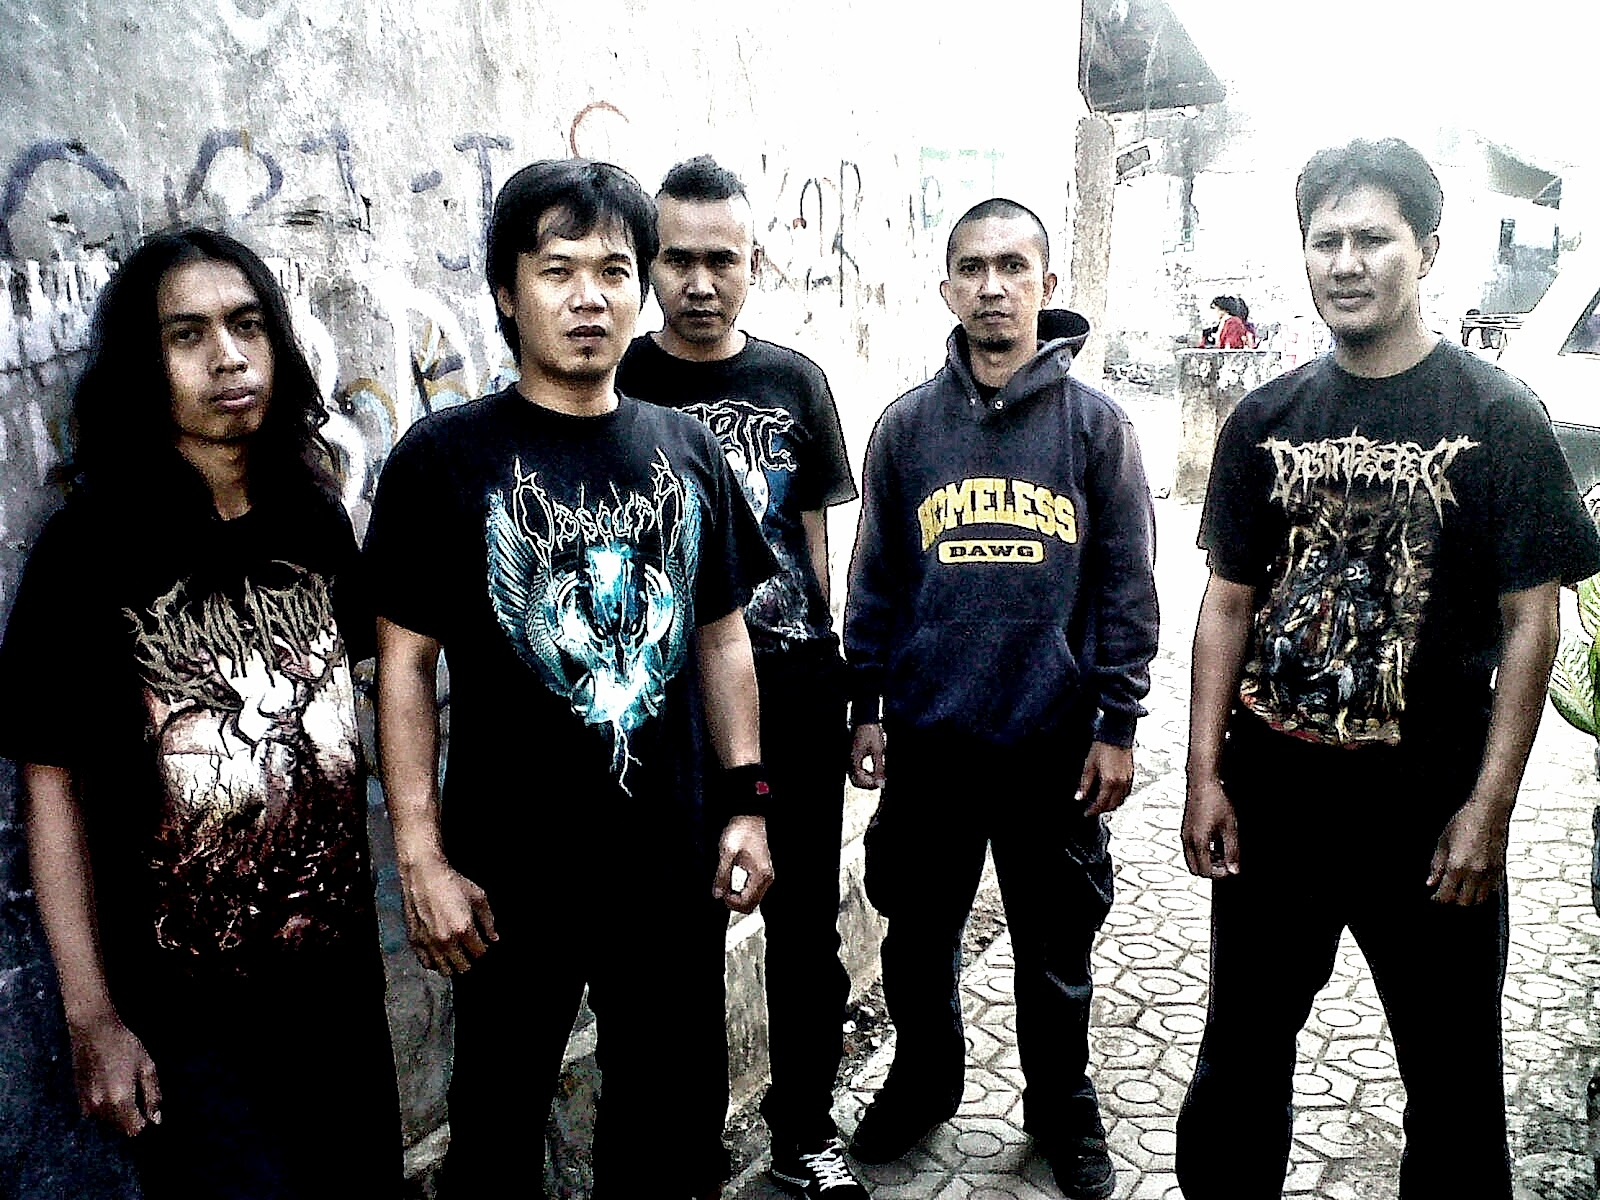 Busuk Webzine Old Site Interview Exclusive With Disinfected At Tendencies Tshirt Future Punk Hitam L Pieces Studio Ujung Berungwest Java Bandung Indonesia Sunday July 01 2012 1538 By Popo Demons Damn